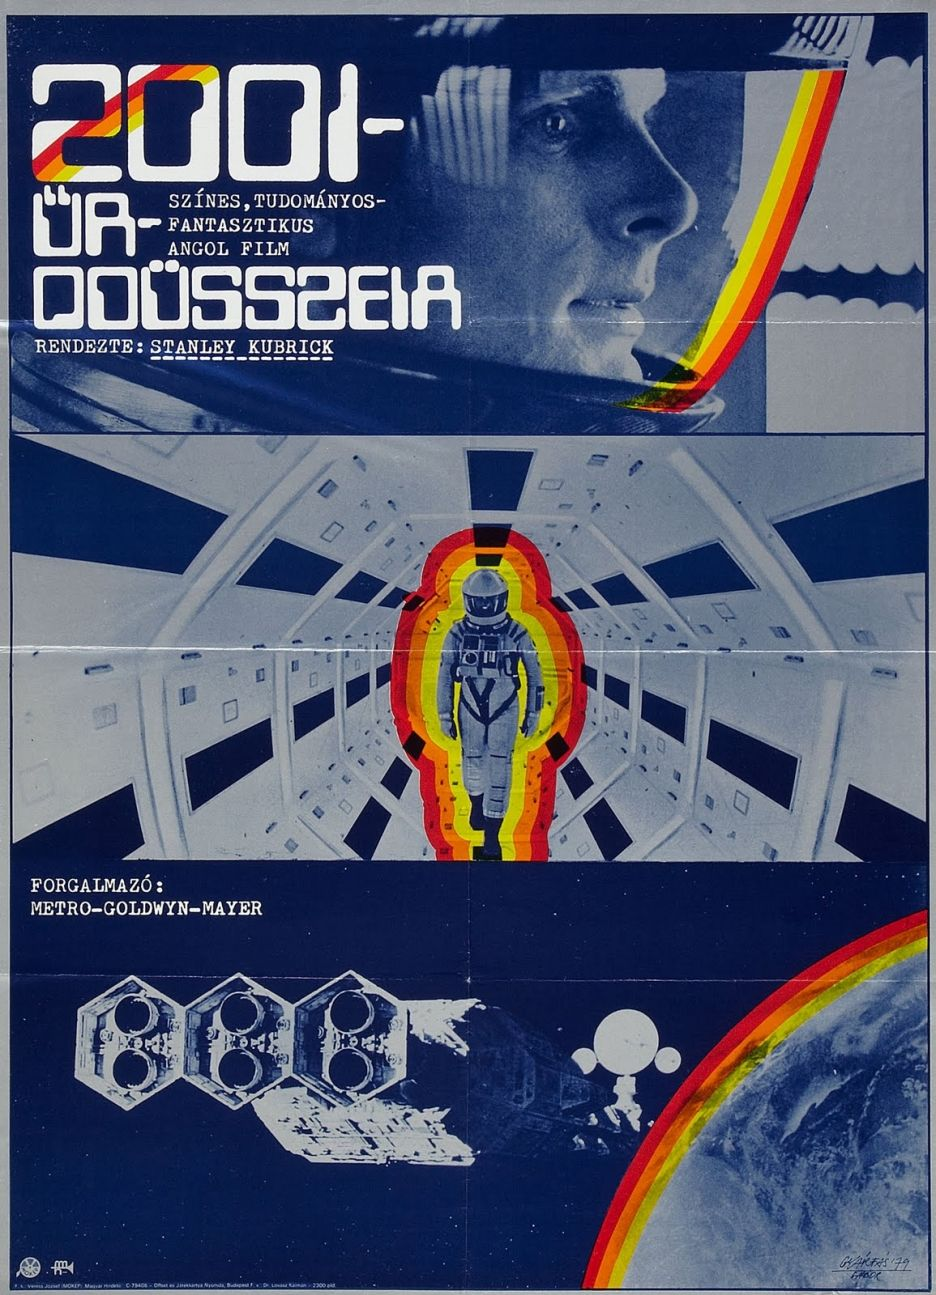 2001 A Space Odyssey (1968) Hungary